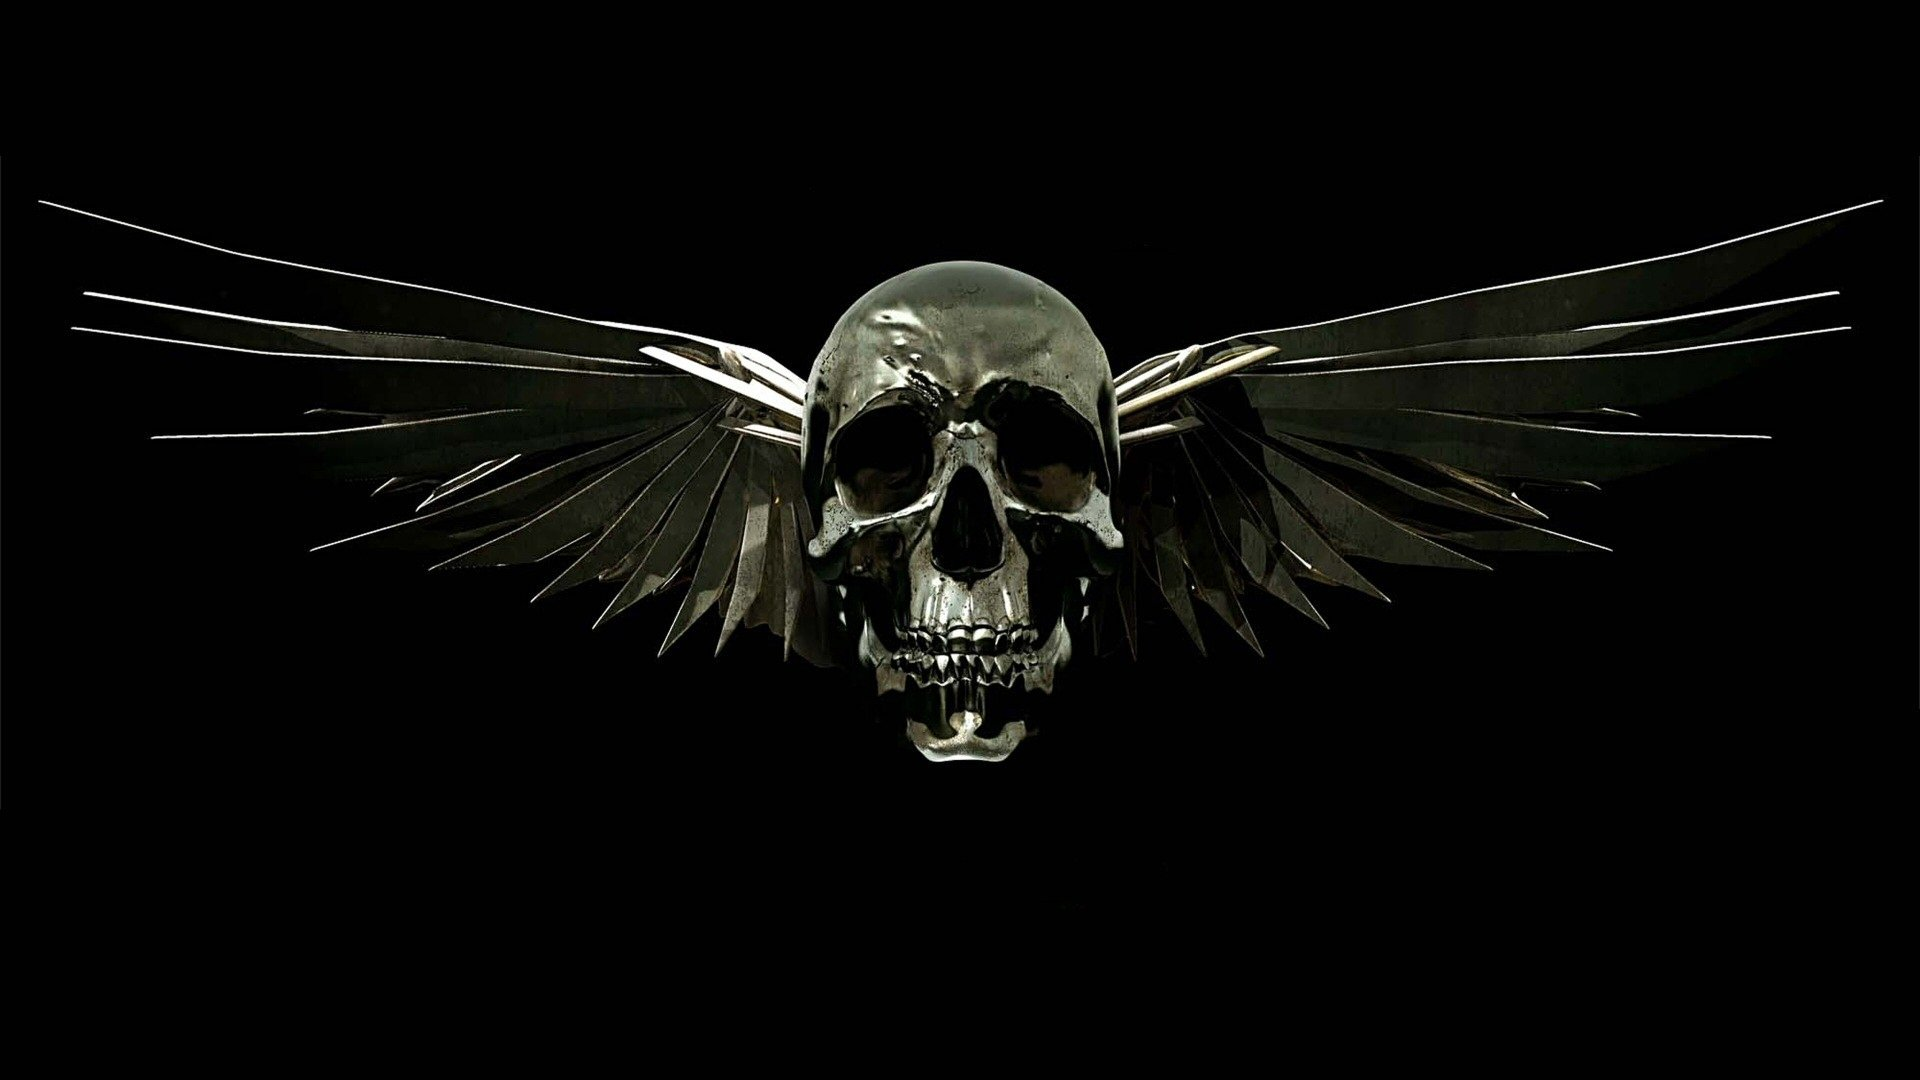 EXPENDABLES - movie skull wings wallpaper | 1920x1080 | 484916 ...